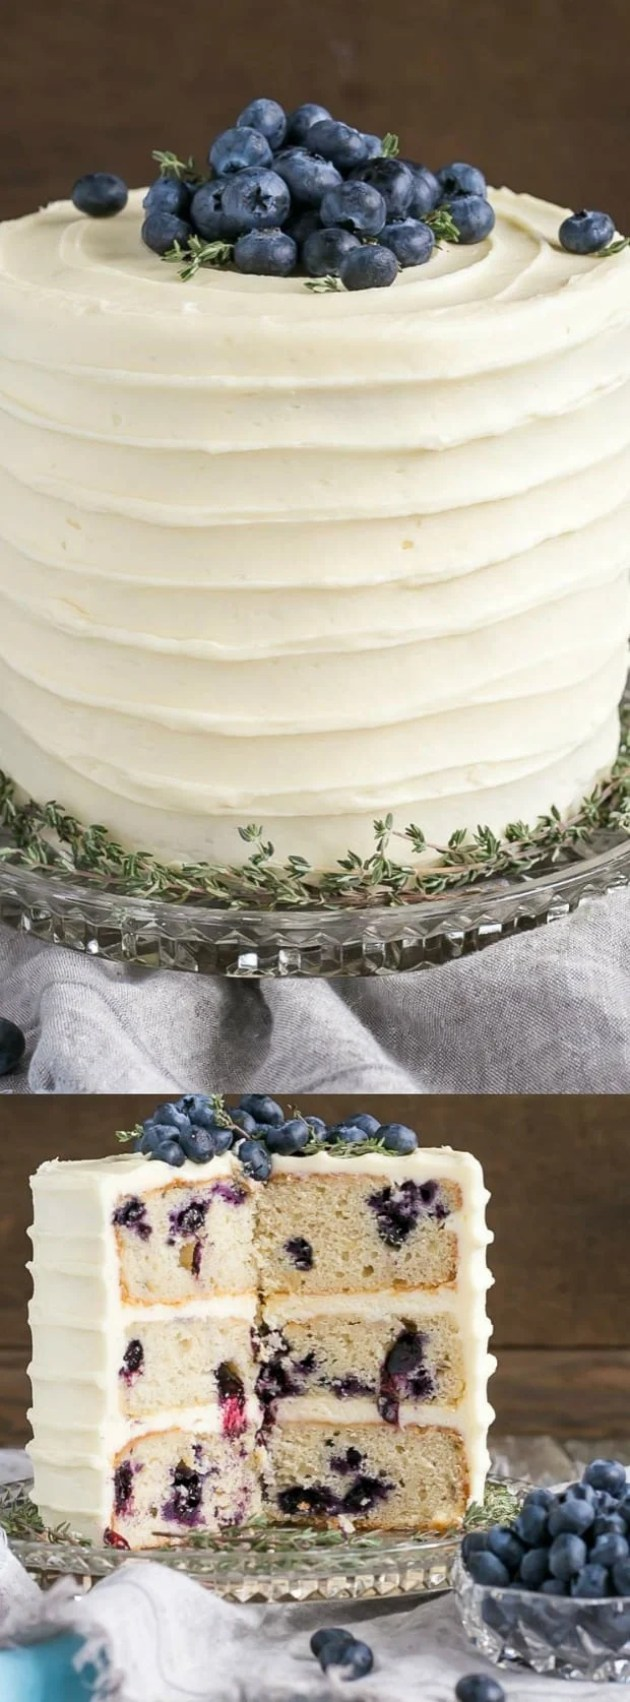 Blueberry Banana Cake with Cream Cheese Frosting longpin